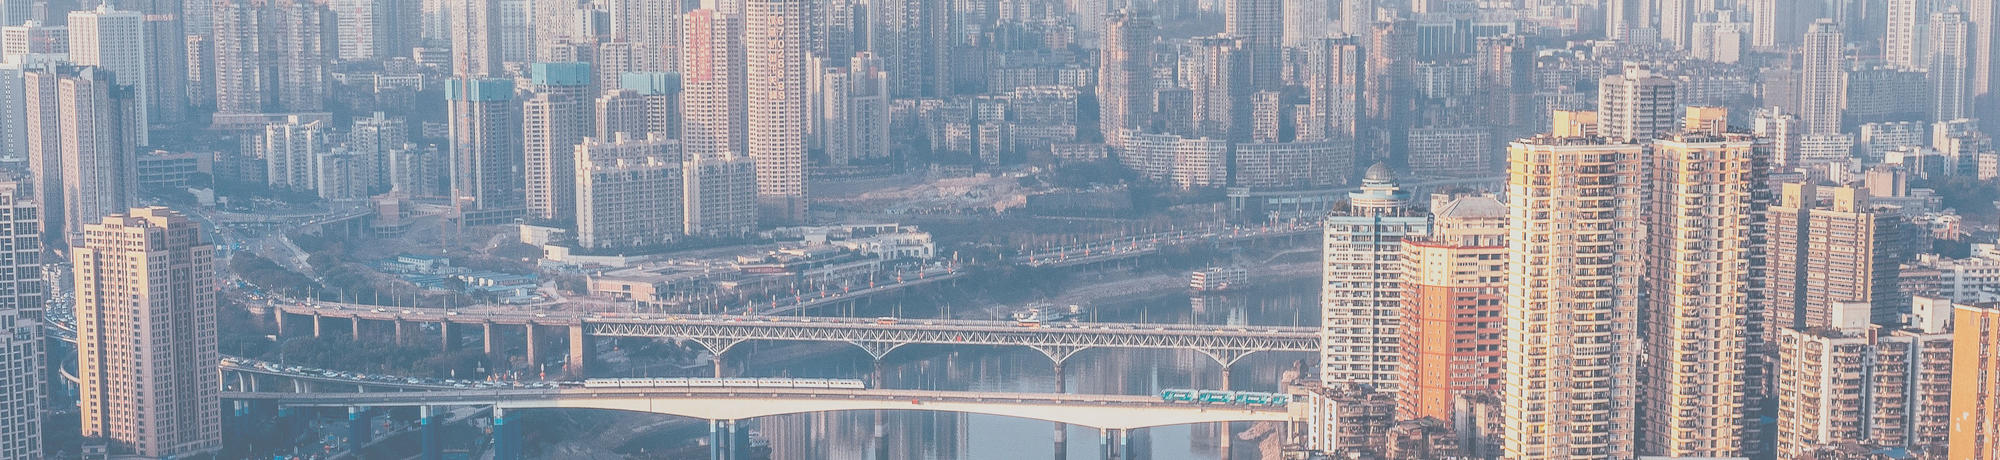 cropped_chongqing_from_unsplash_banner_on_detail_page